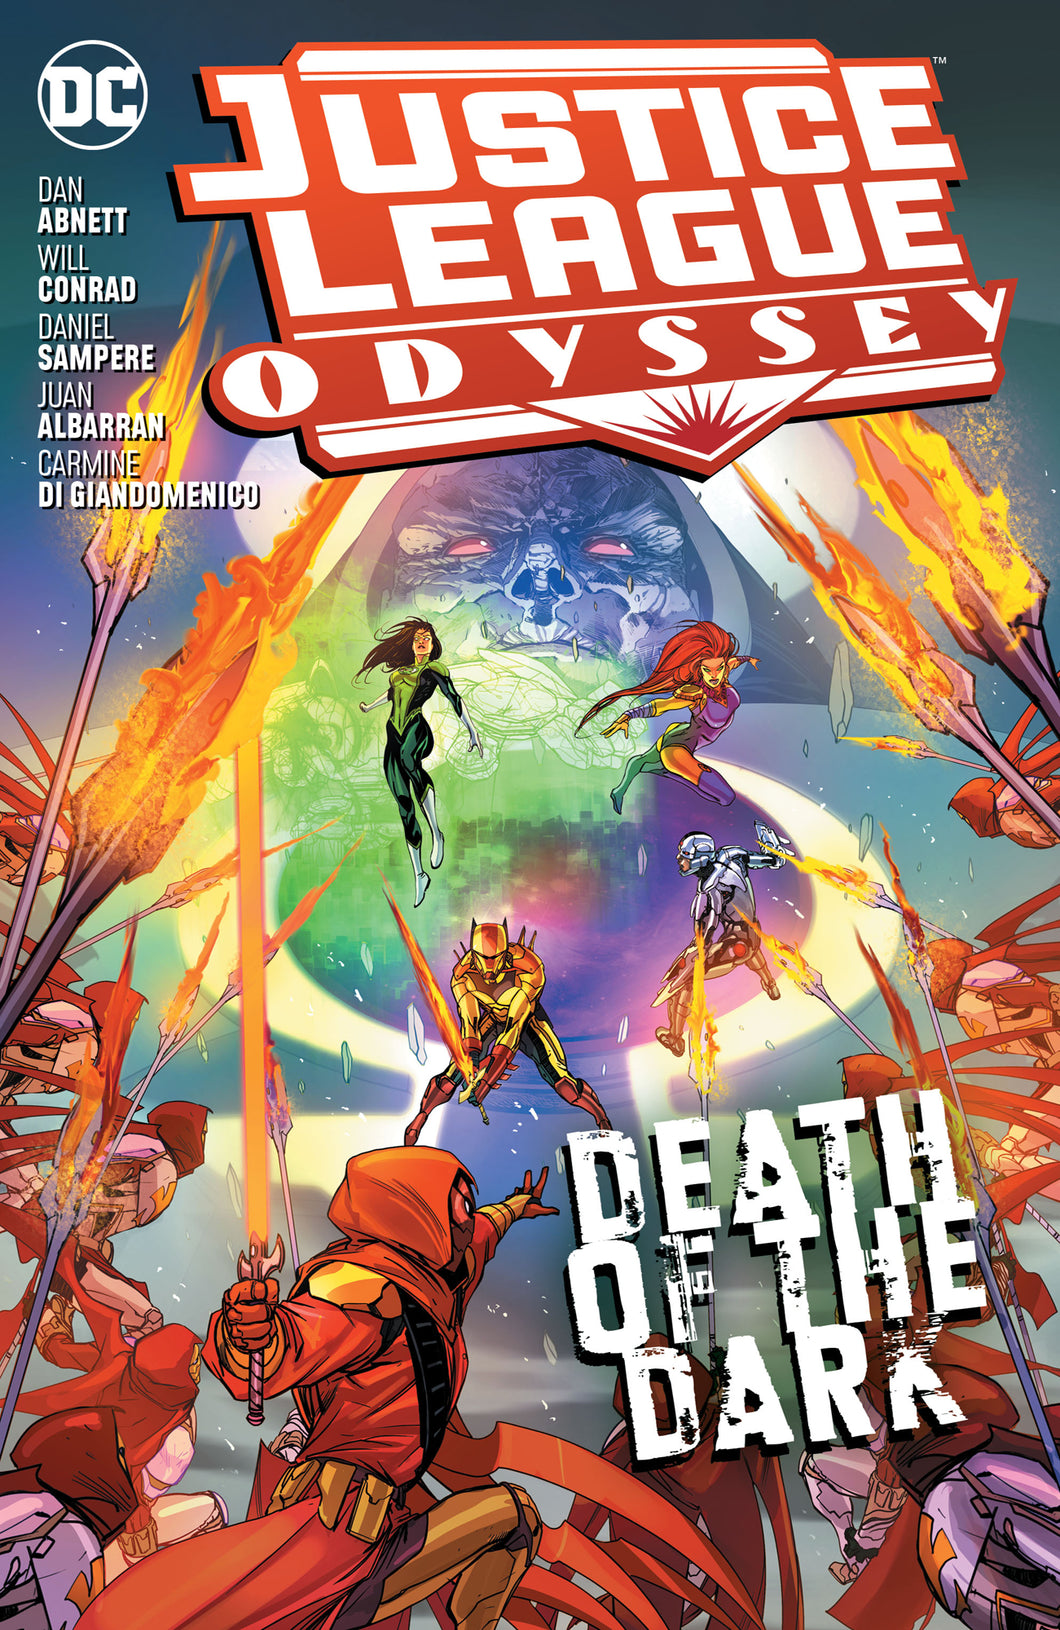 JUSTICE LEAGUE ODYSSEY TP VOL 02 DEATH OF THE DARK